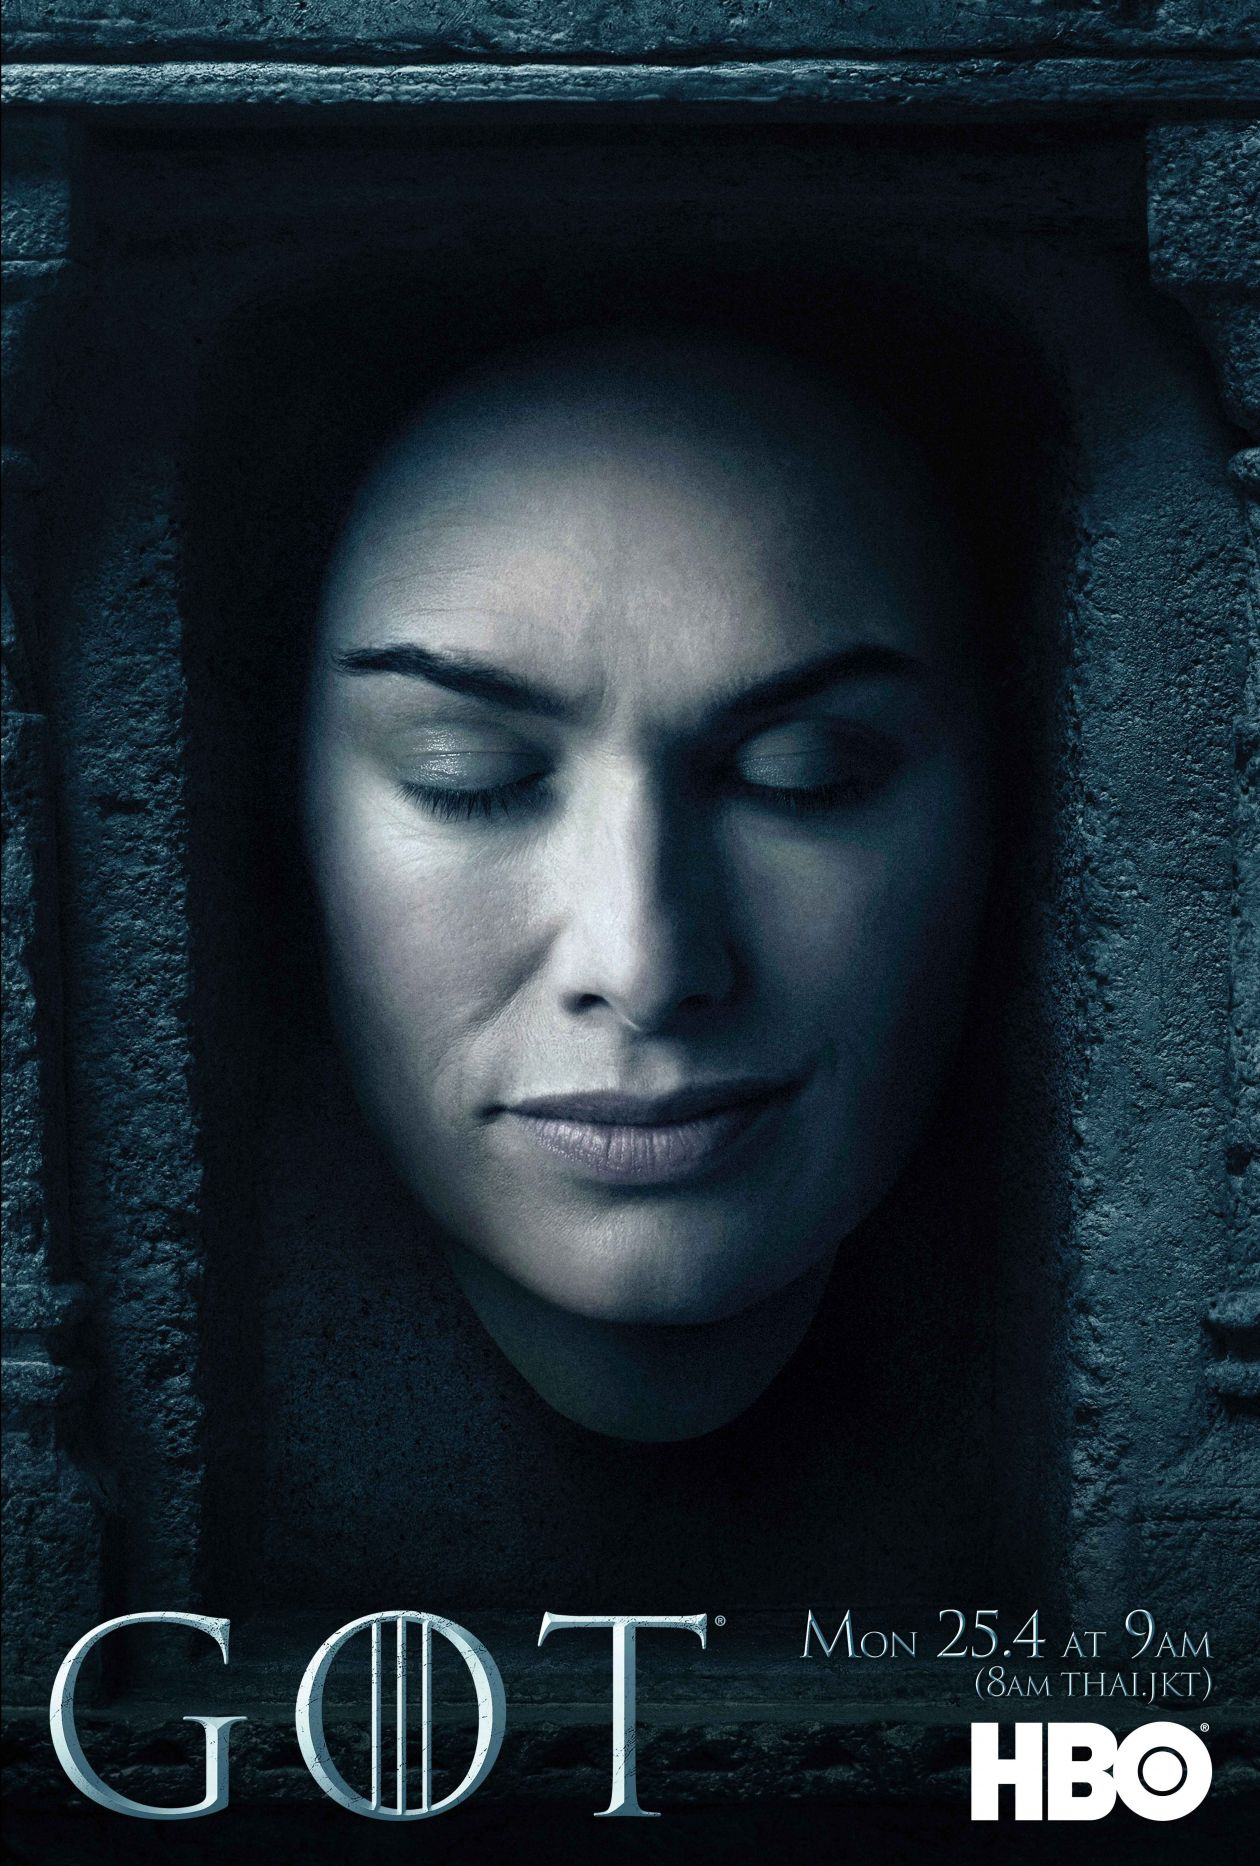 Lena Headey actress / Game of Thrones / Queen of the Seven Kingdoms / Cersei Lannister 2016 MOVIE SERIES SEASON 6 POSTER / AFFICHE SERIE SAISON 6